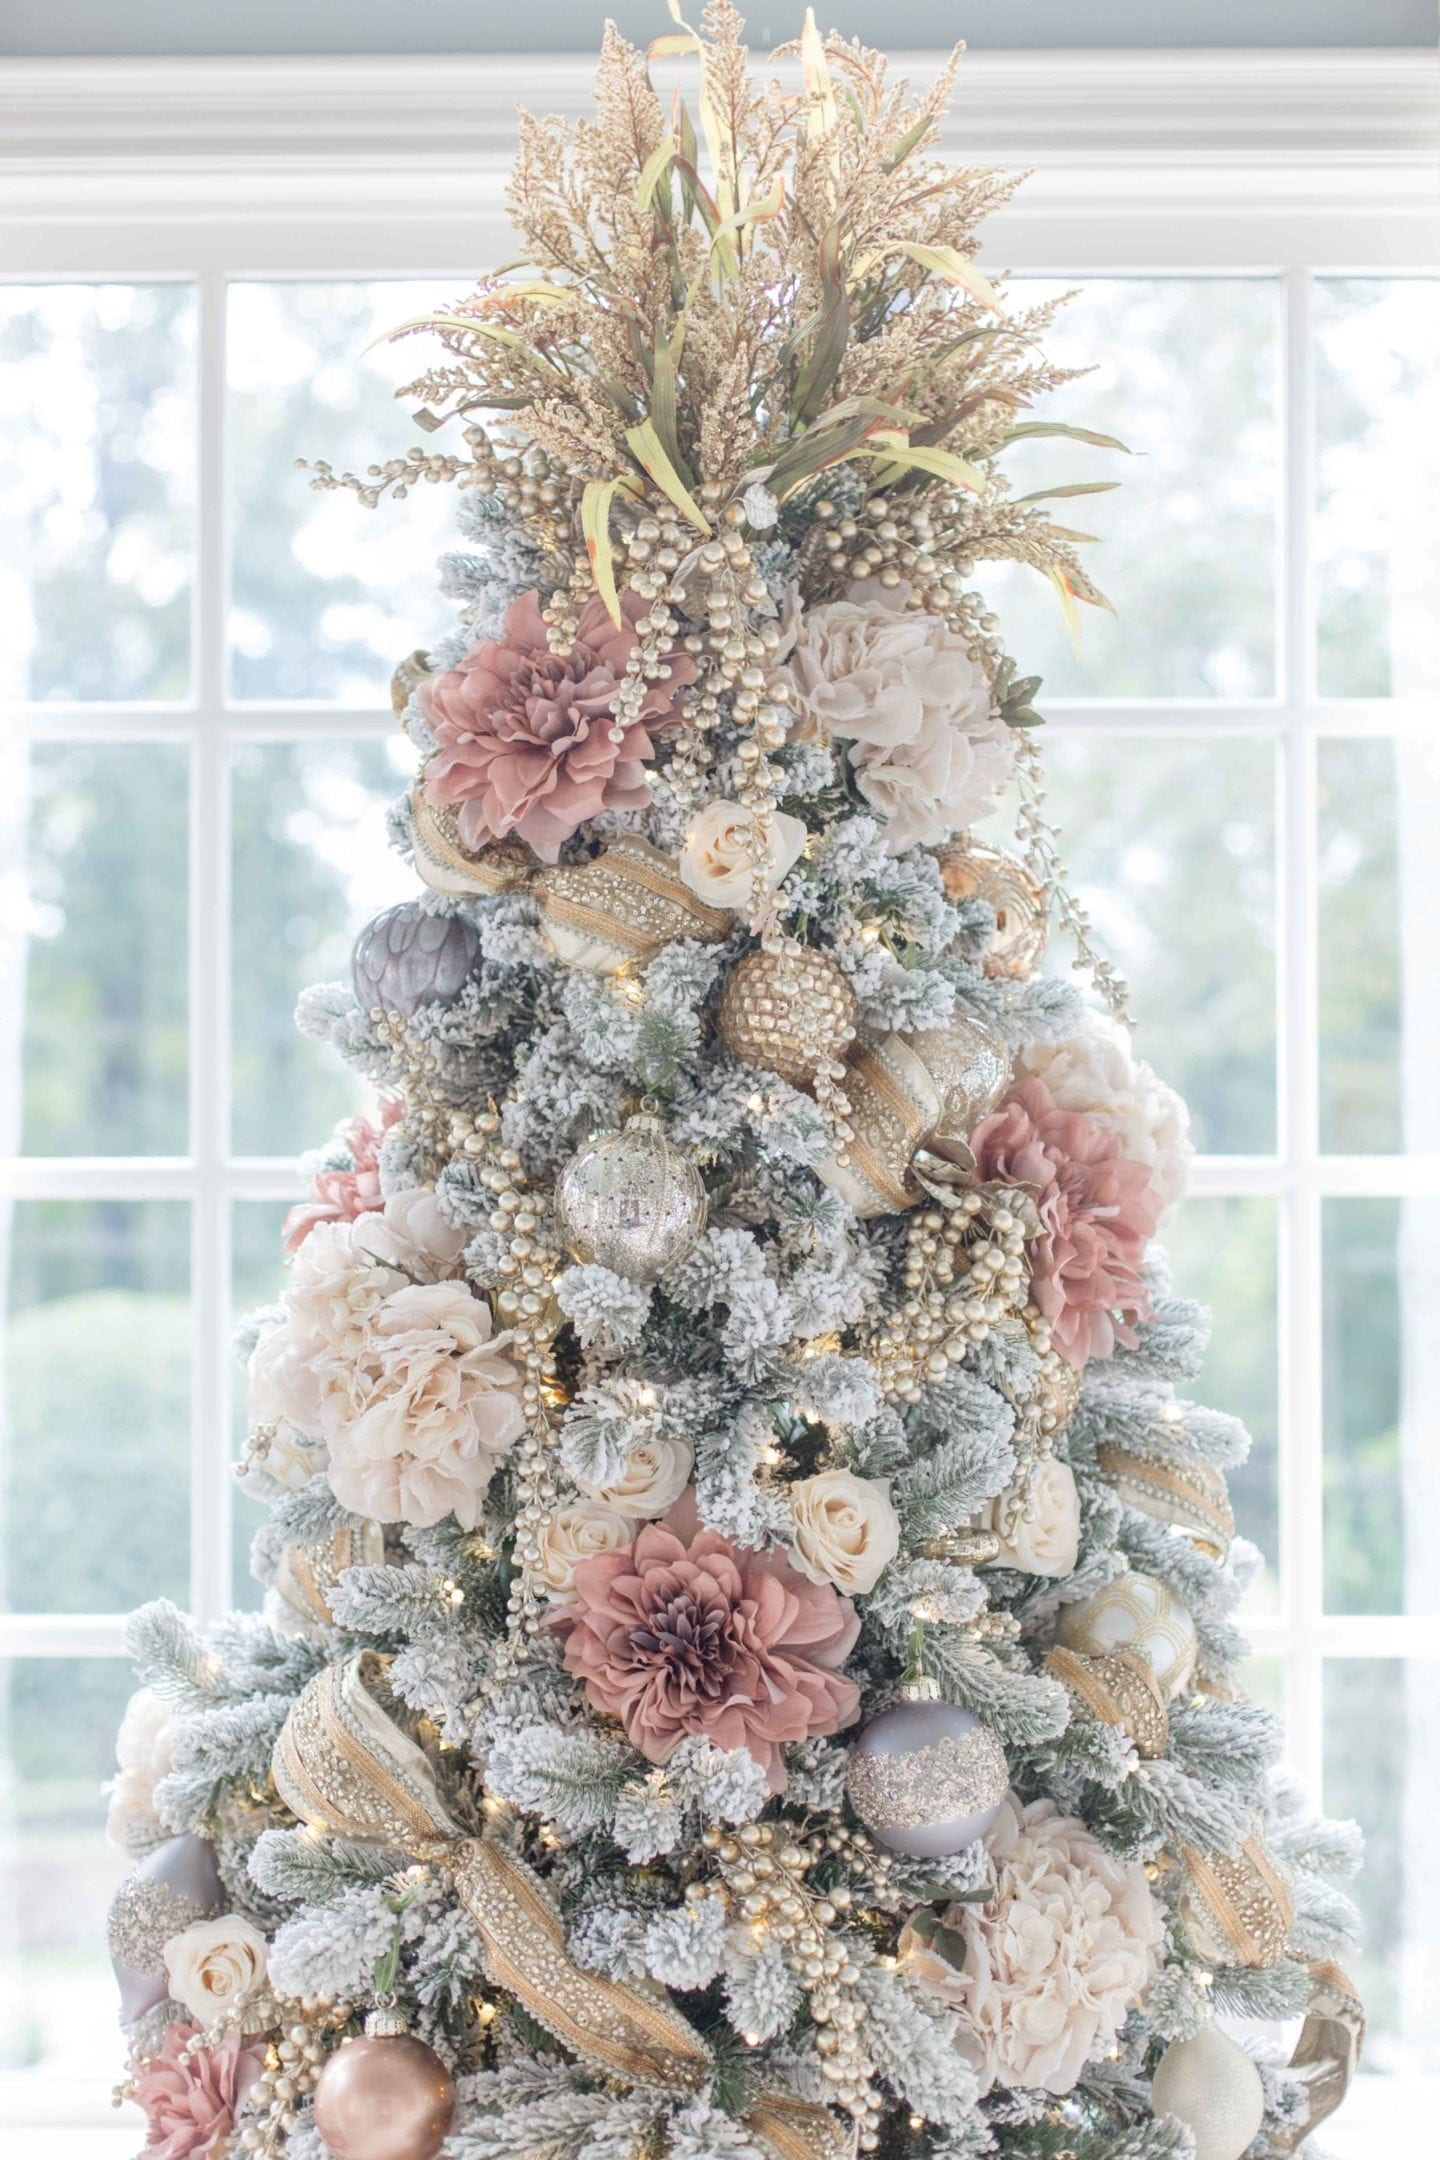 How to decorate a Christmas tree in pink and white and gold.